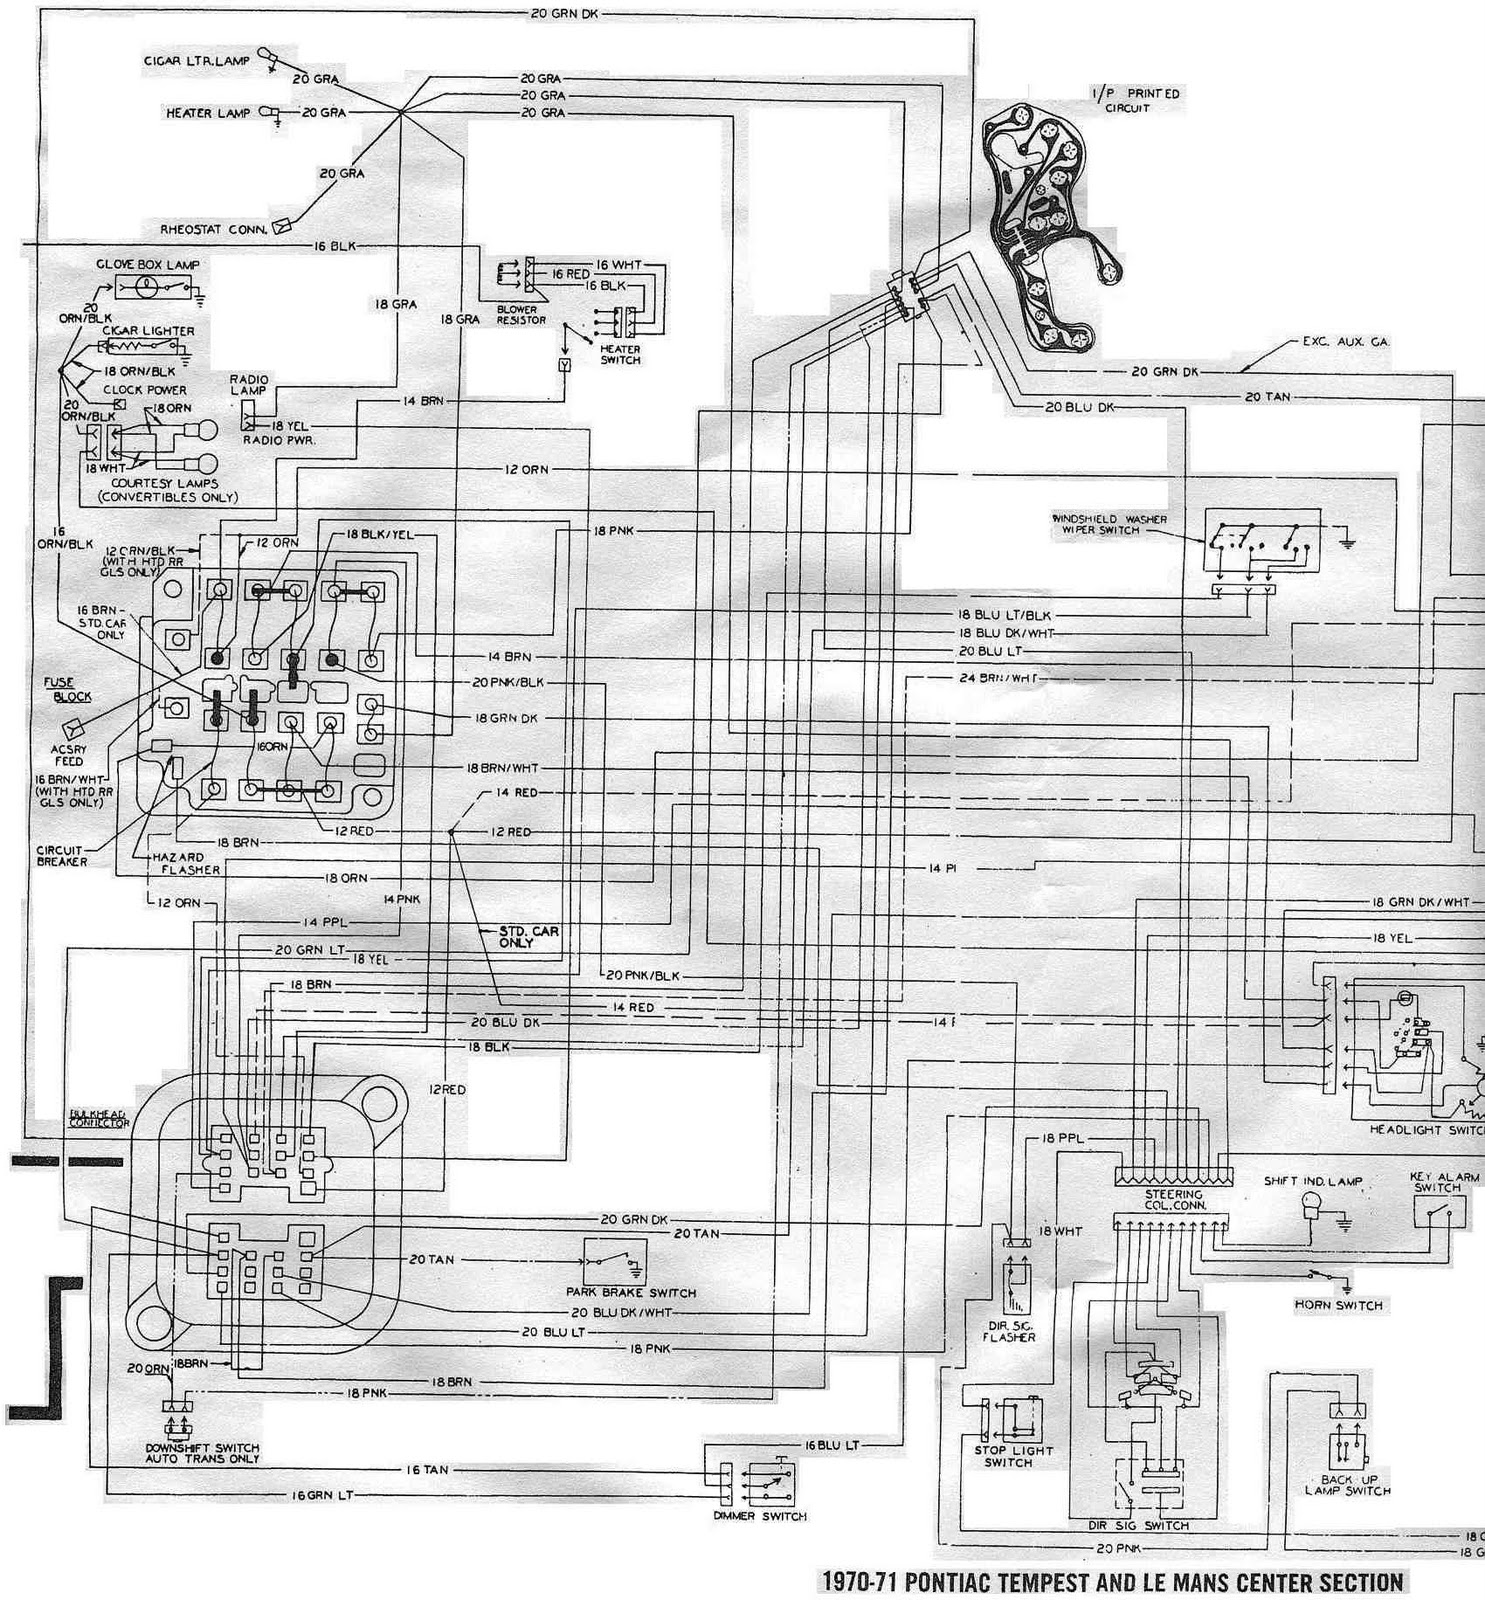 67 Gto Tach Wiring Detailed Schematics Diagram Rh Mrskindsclass Com 1967